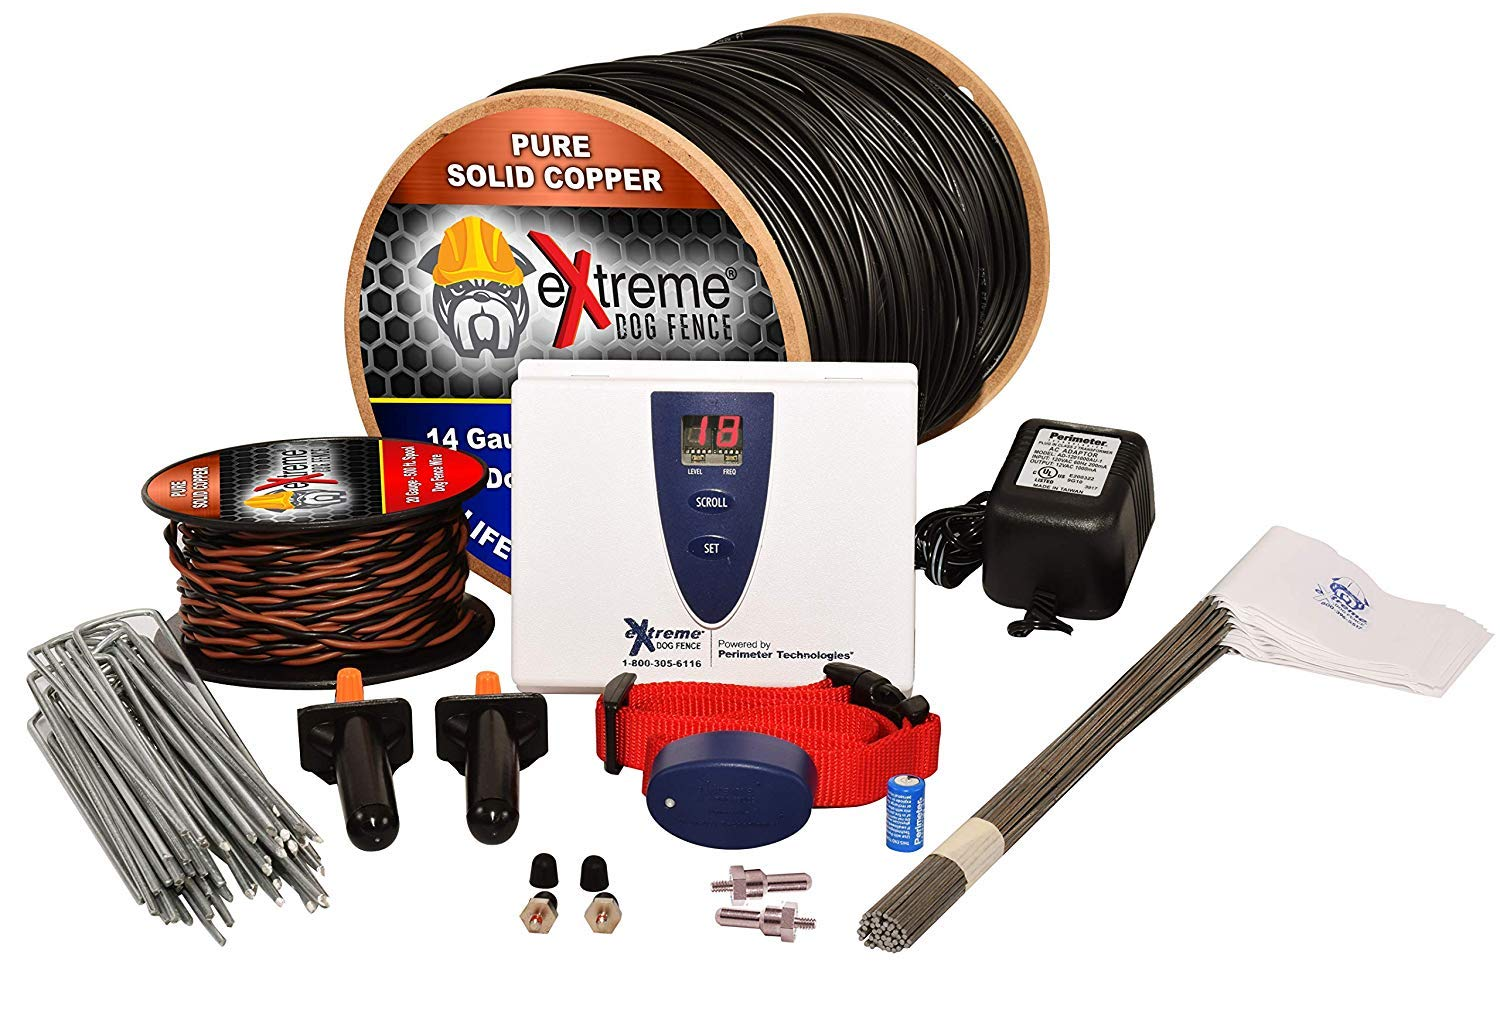 Underground Electric Dog Fence Ultimate - Extreme Pro Dog Fence System for Easy Setup and Maximum Longevity and Continued Reliable Pet Safety - 1 Dog | 1000 Feet Pro Grade Dog Fence Wire by Extreme Dog Fence